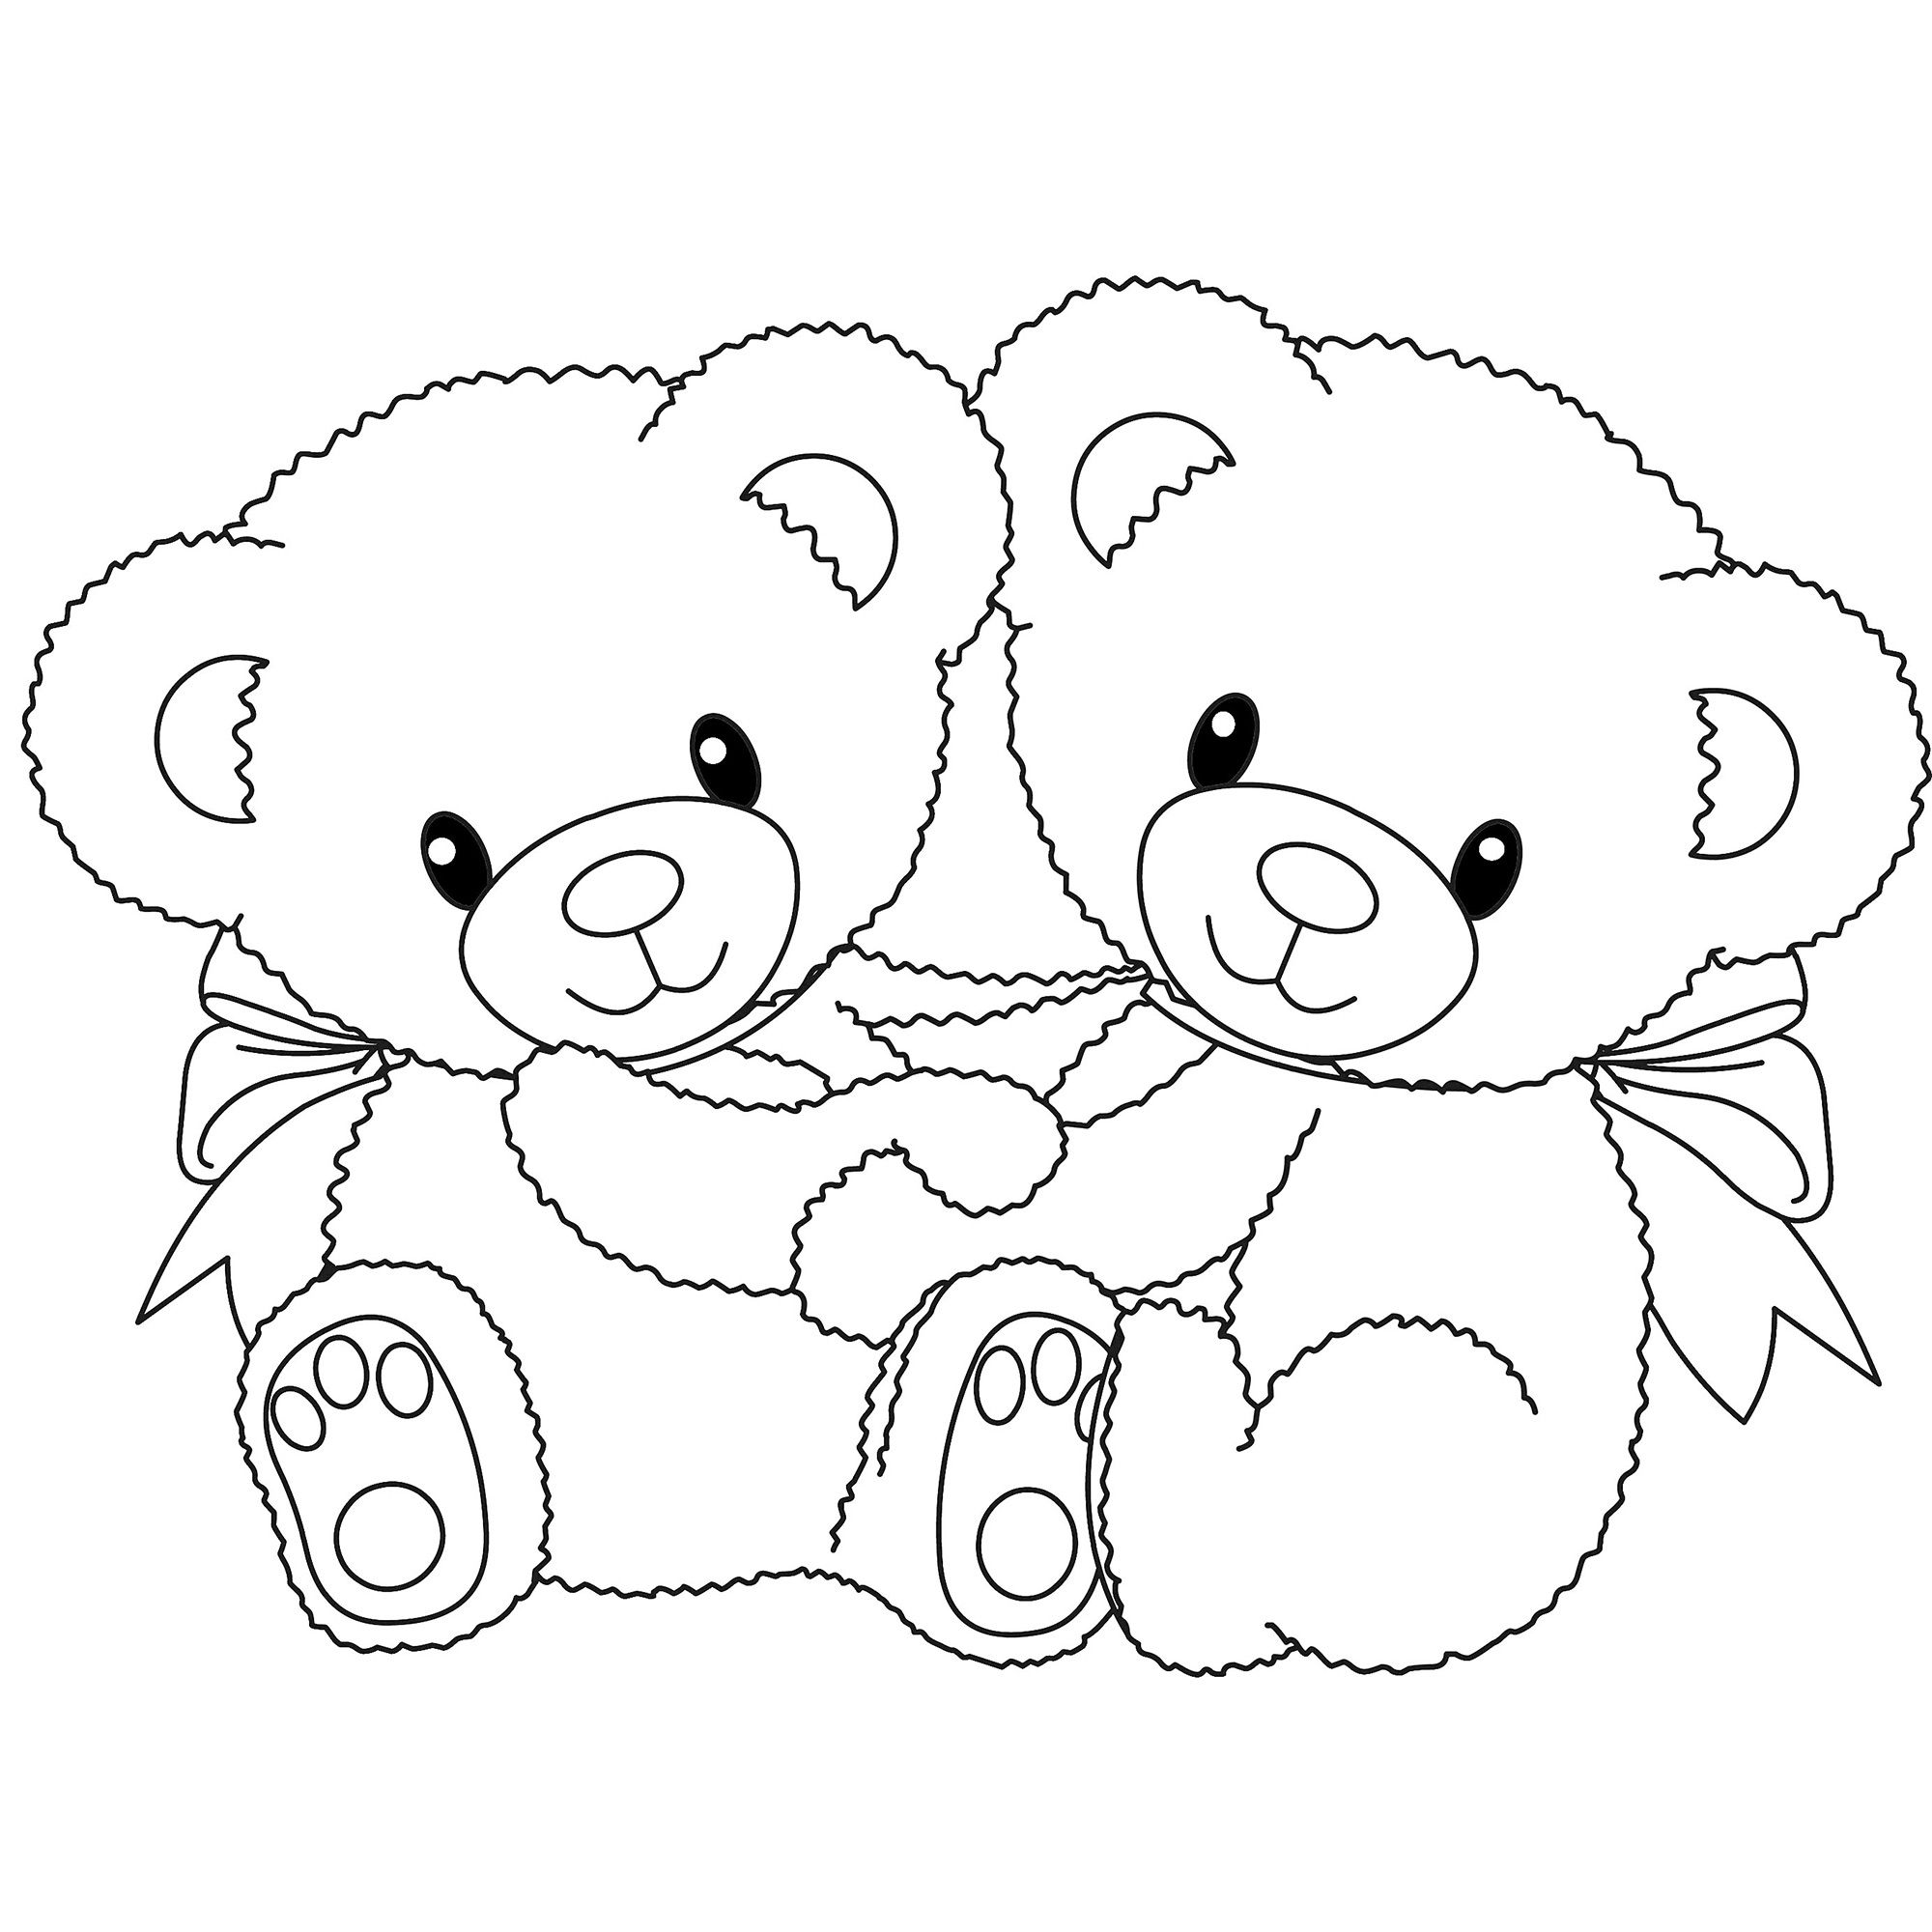 Teddy bear coloring pages free printable coloring pages ...